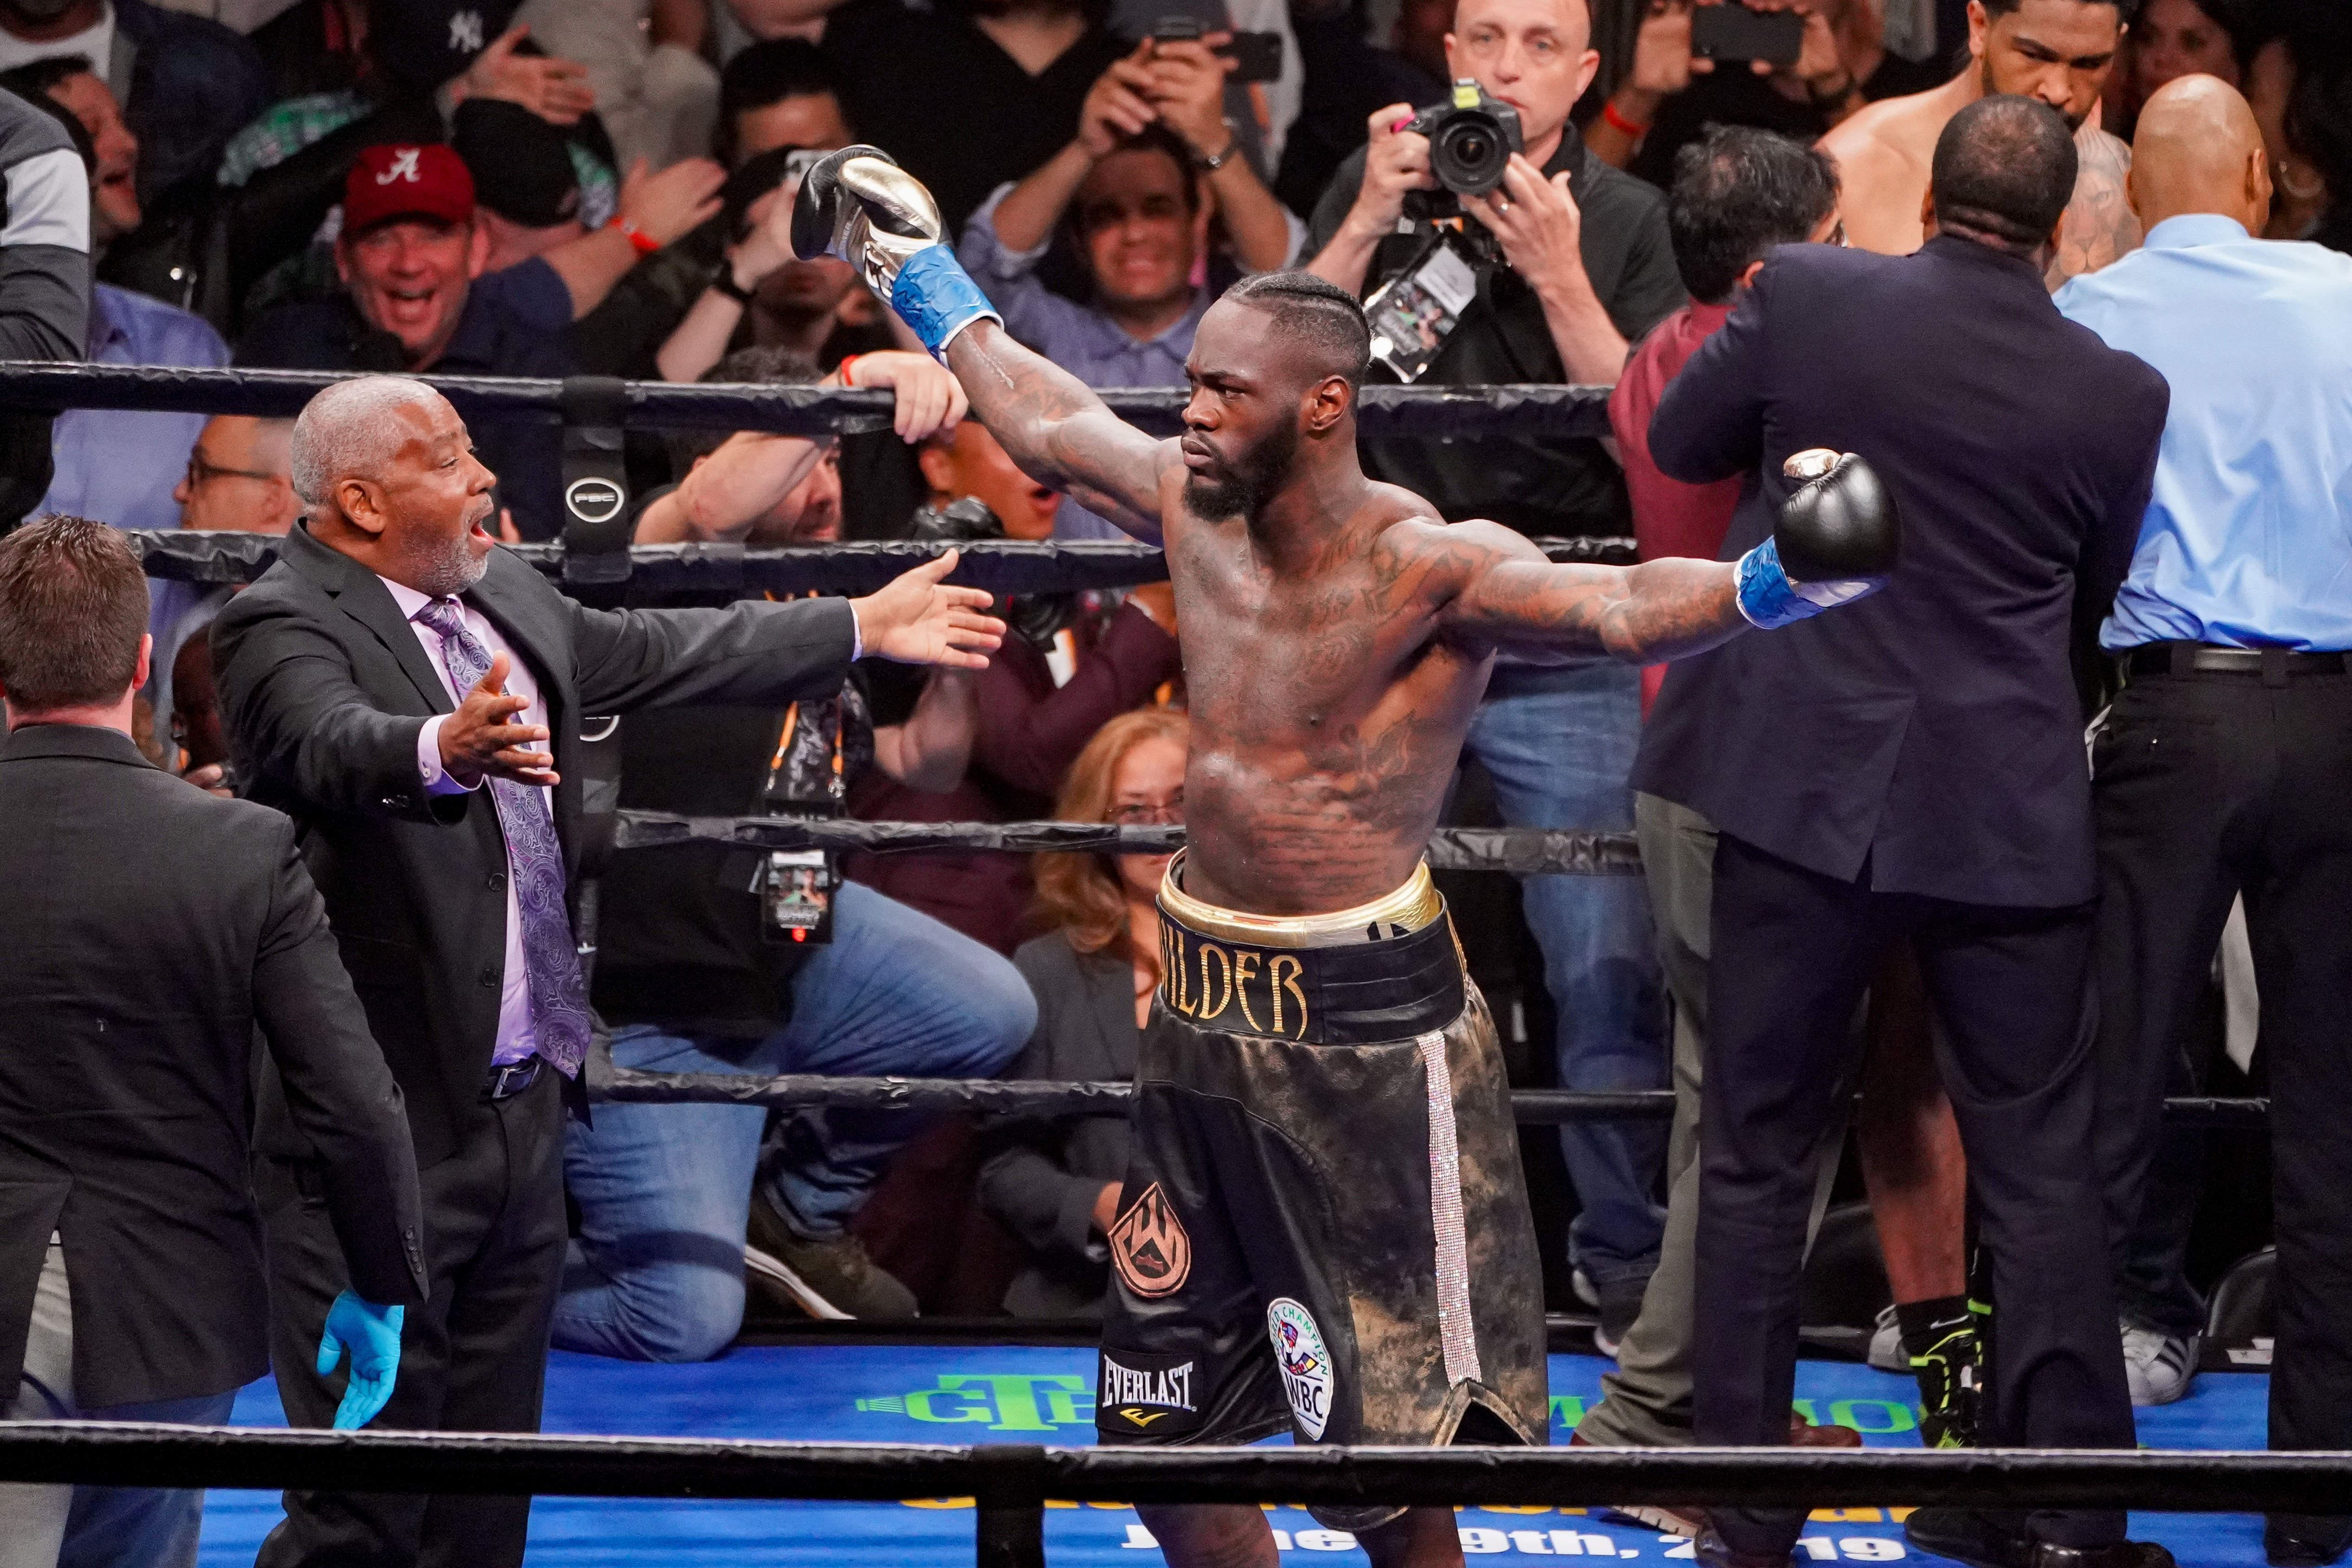 Wilder celebrates his first round stoppage of Dominic Breazeale. Image: PA Images